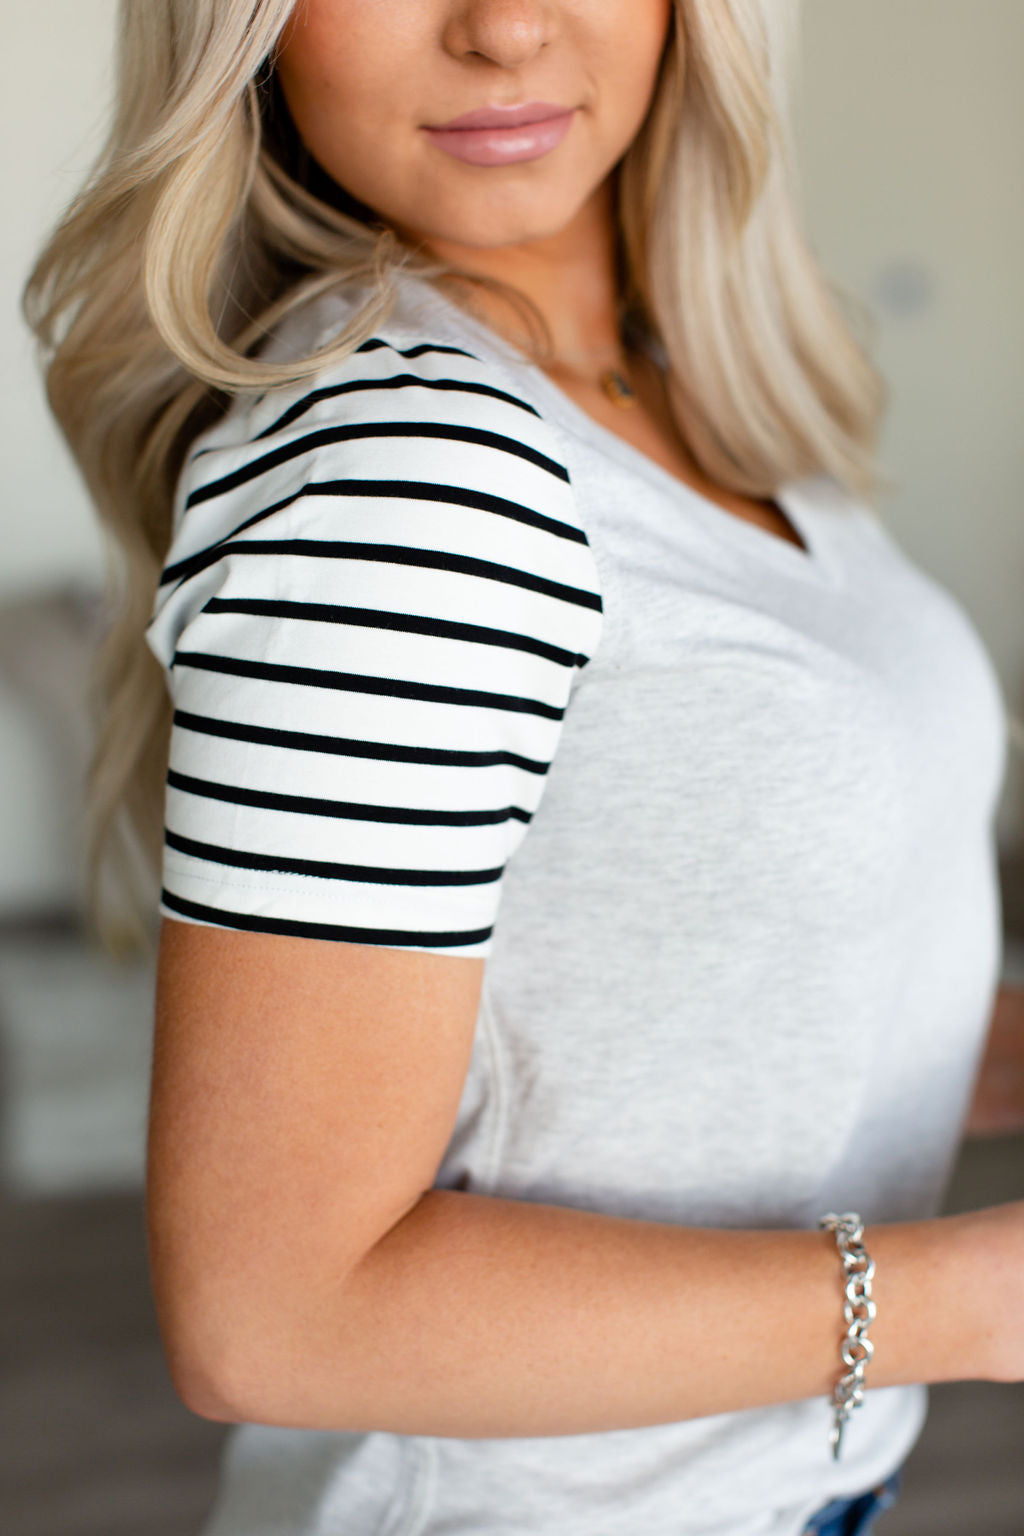 Lulu Accent Tee - Black Stripe Sleeve